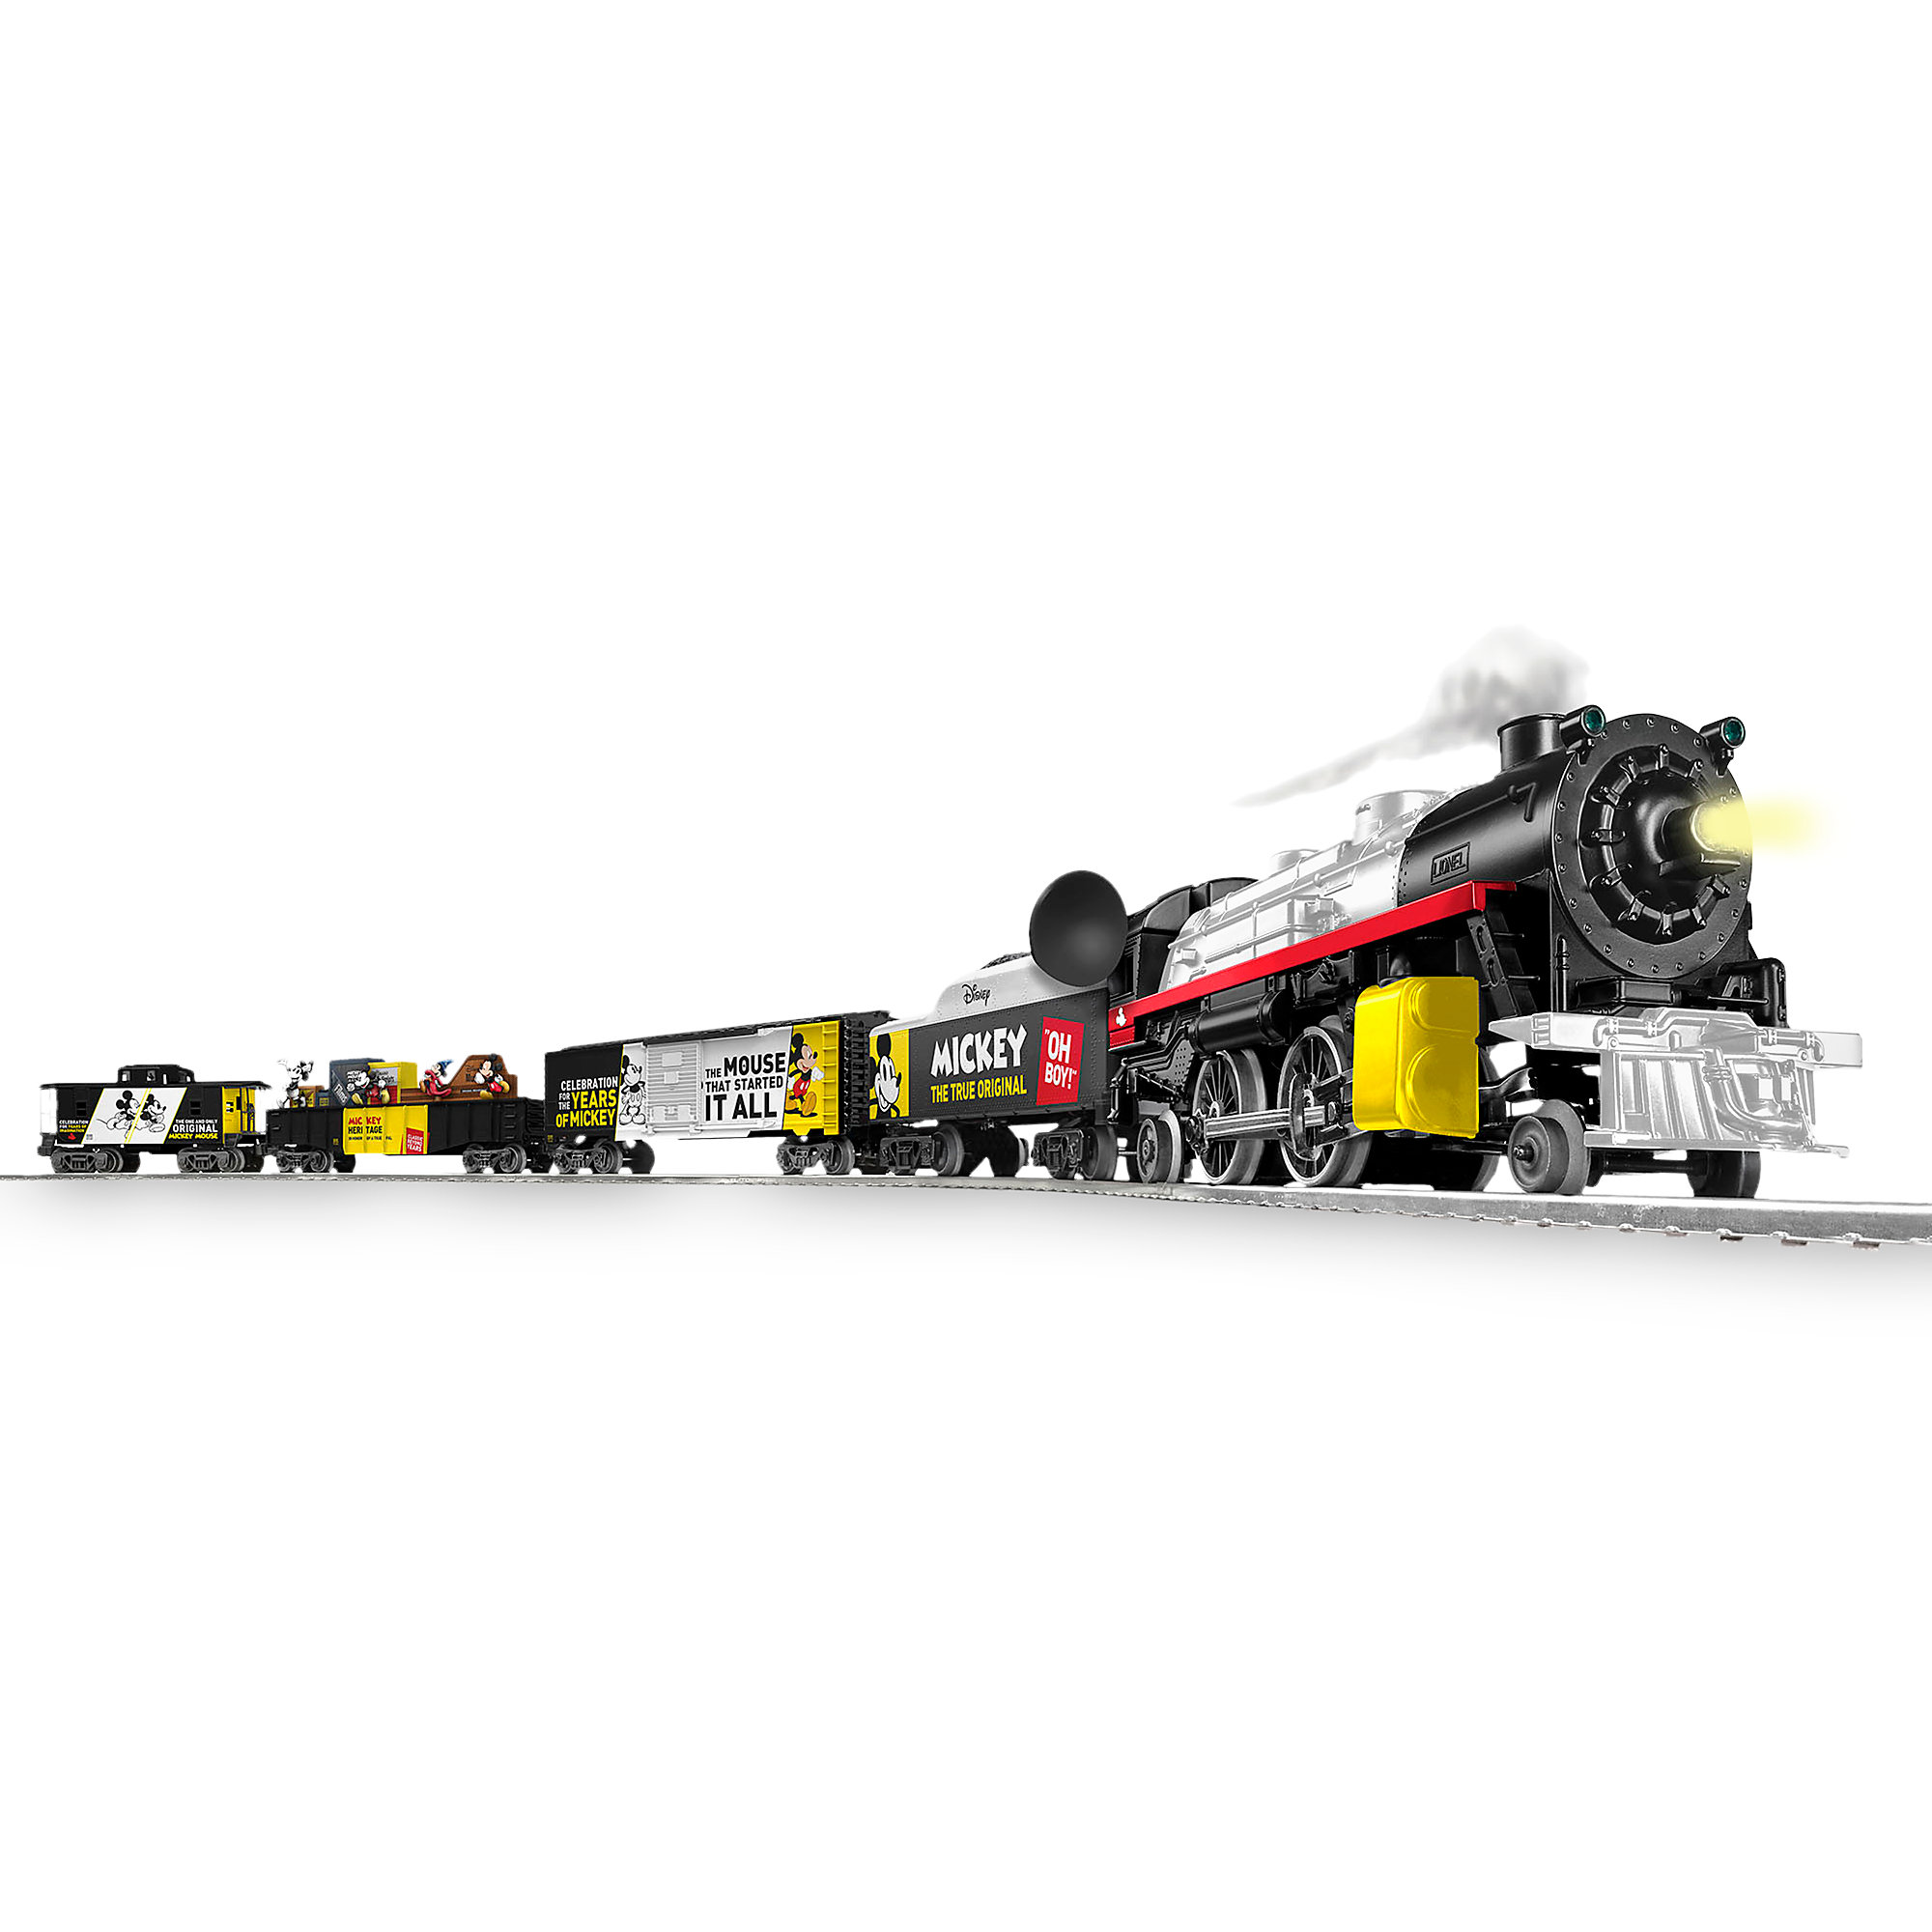 Mickey Mouse 90th Anniversary Ready-to-Run Train Set by Lionel - Limited Edition - Pre-Order